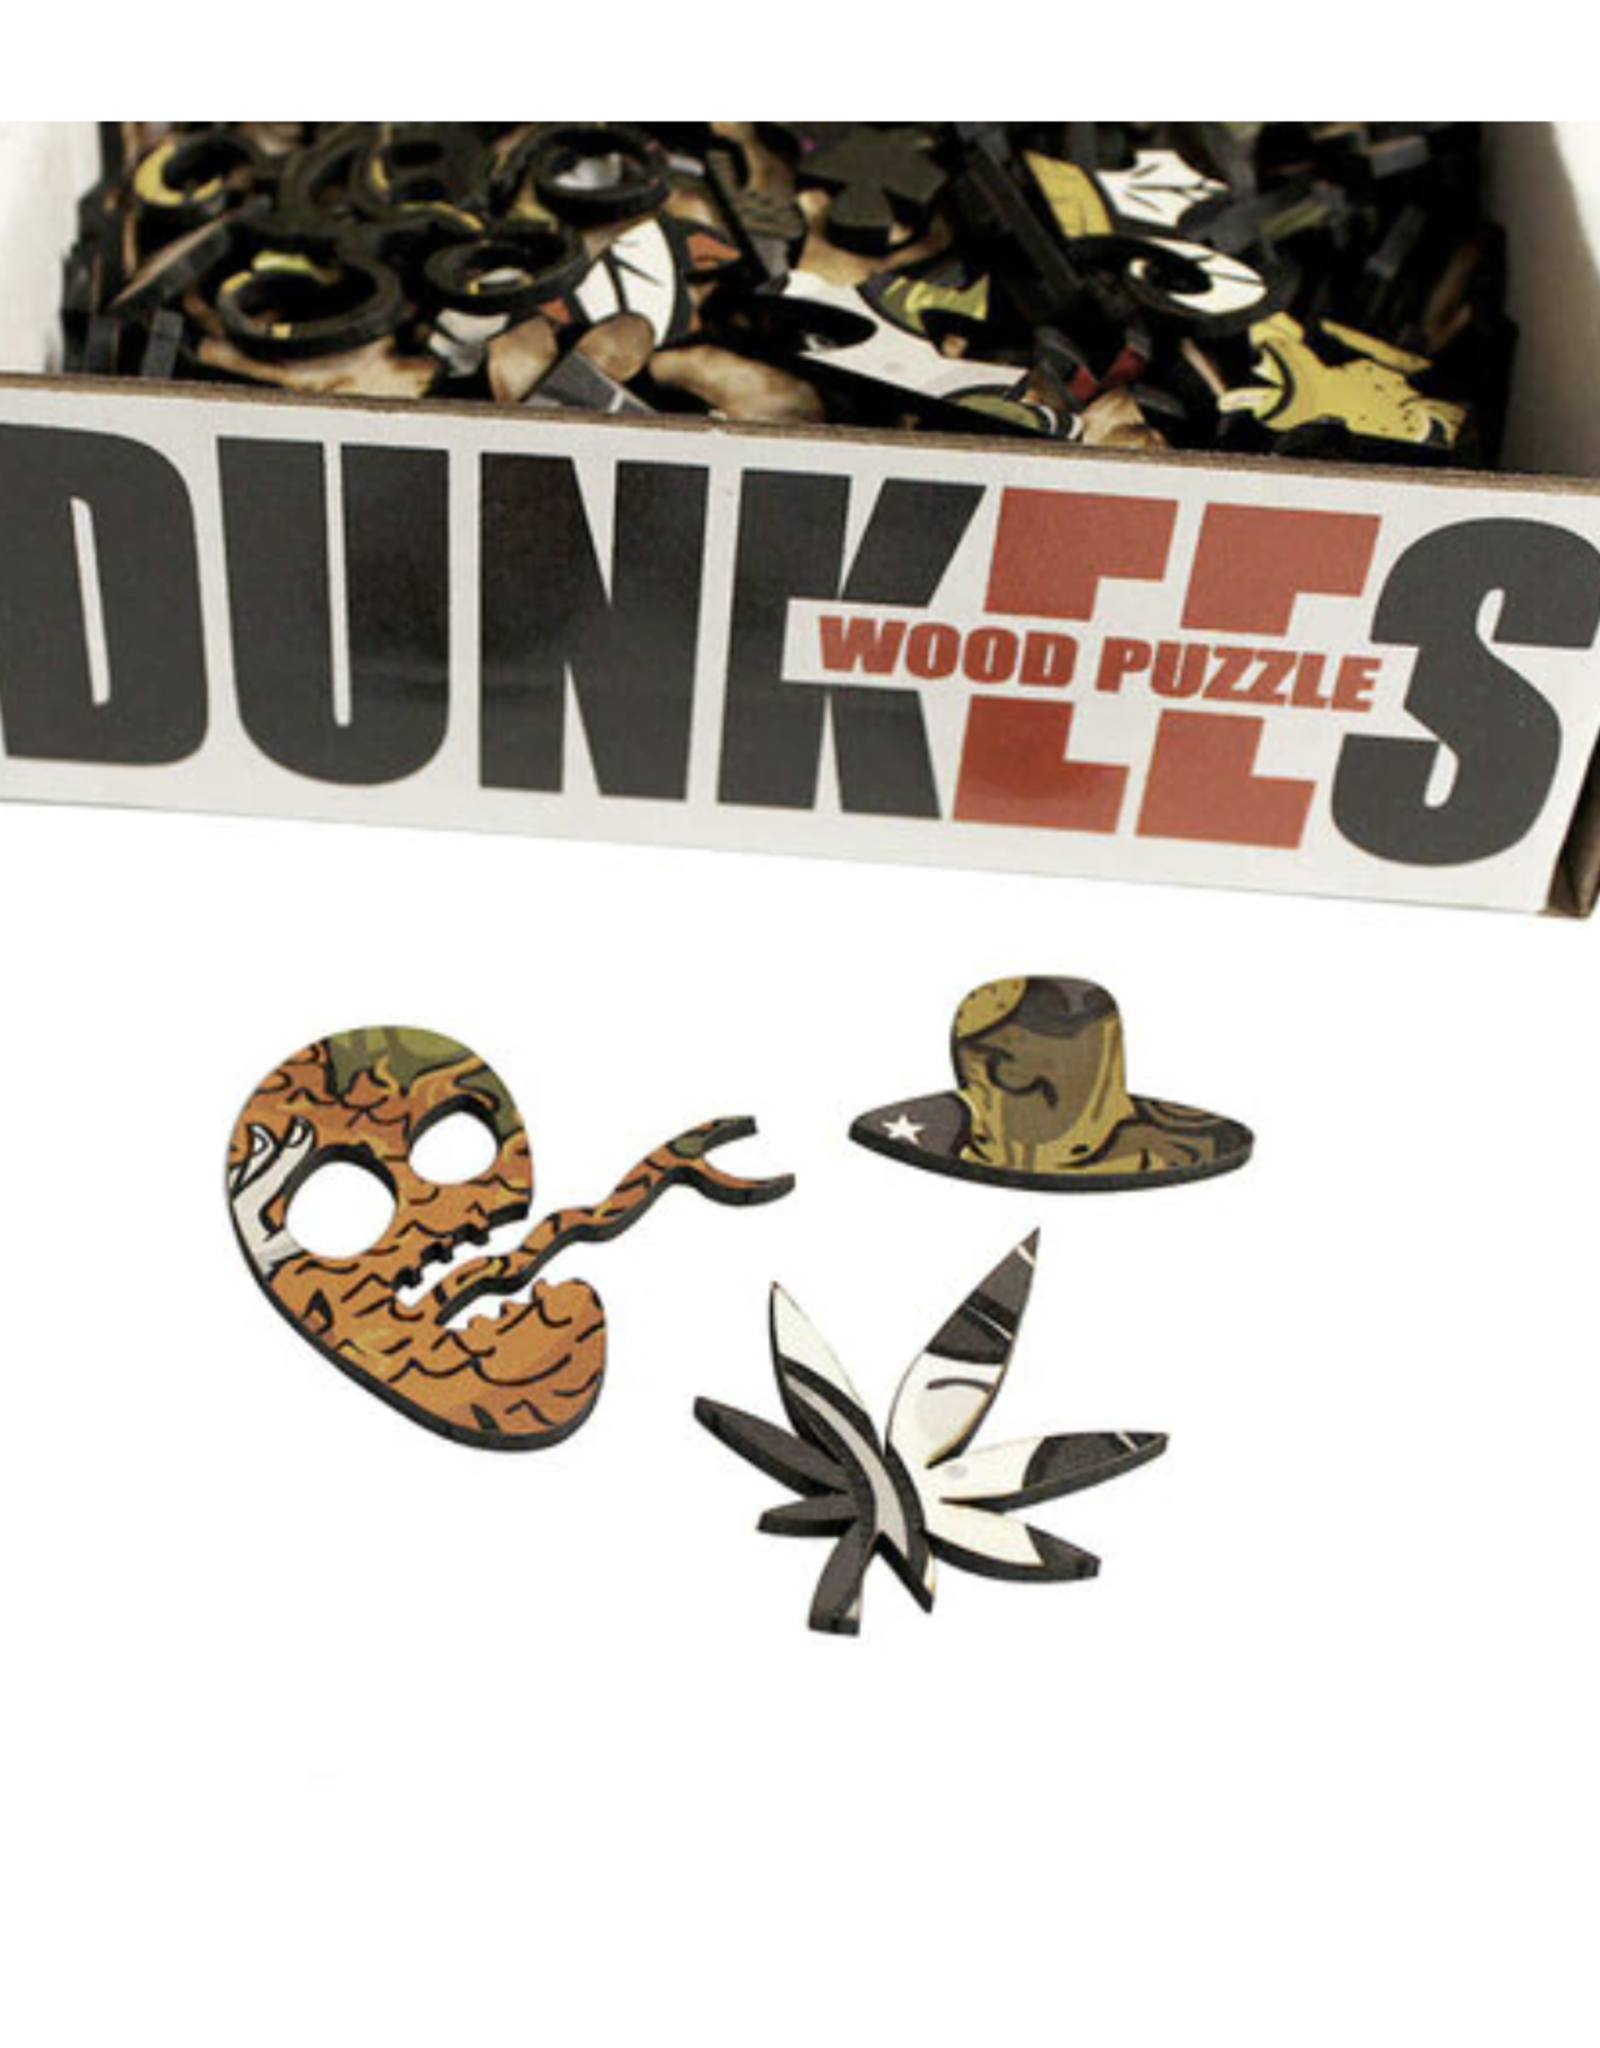 Hell Slide Dunkees Wooden Puzzle - 275 Piece